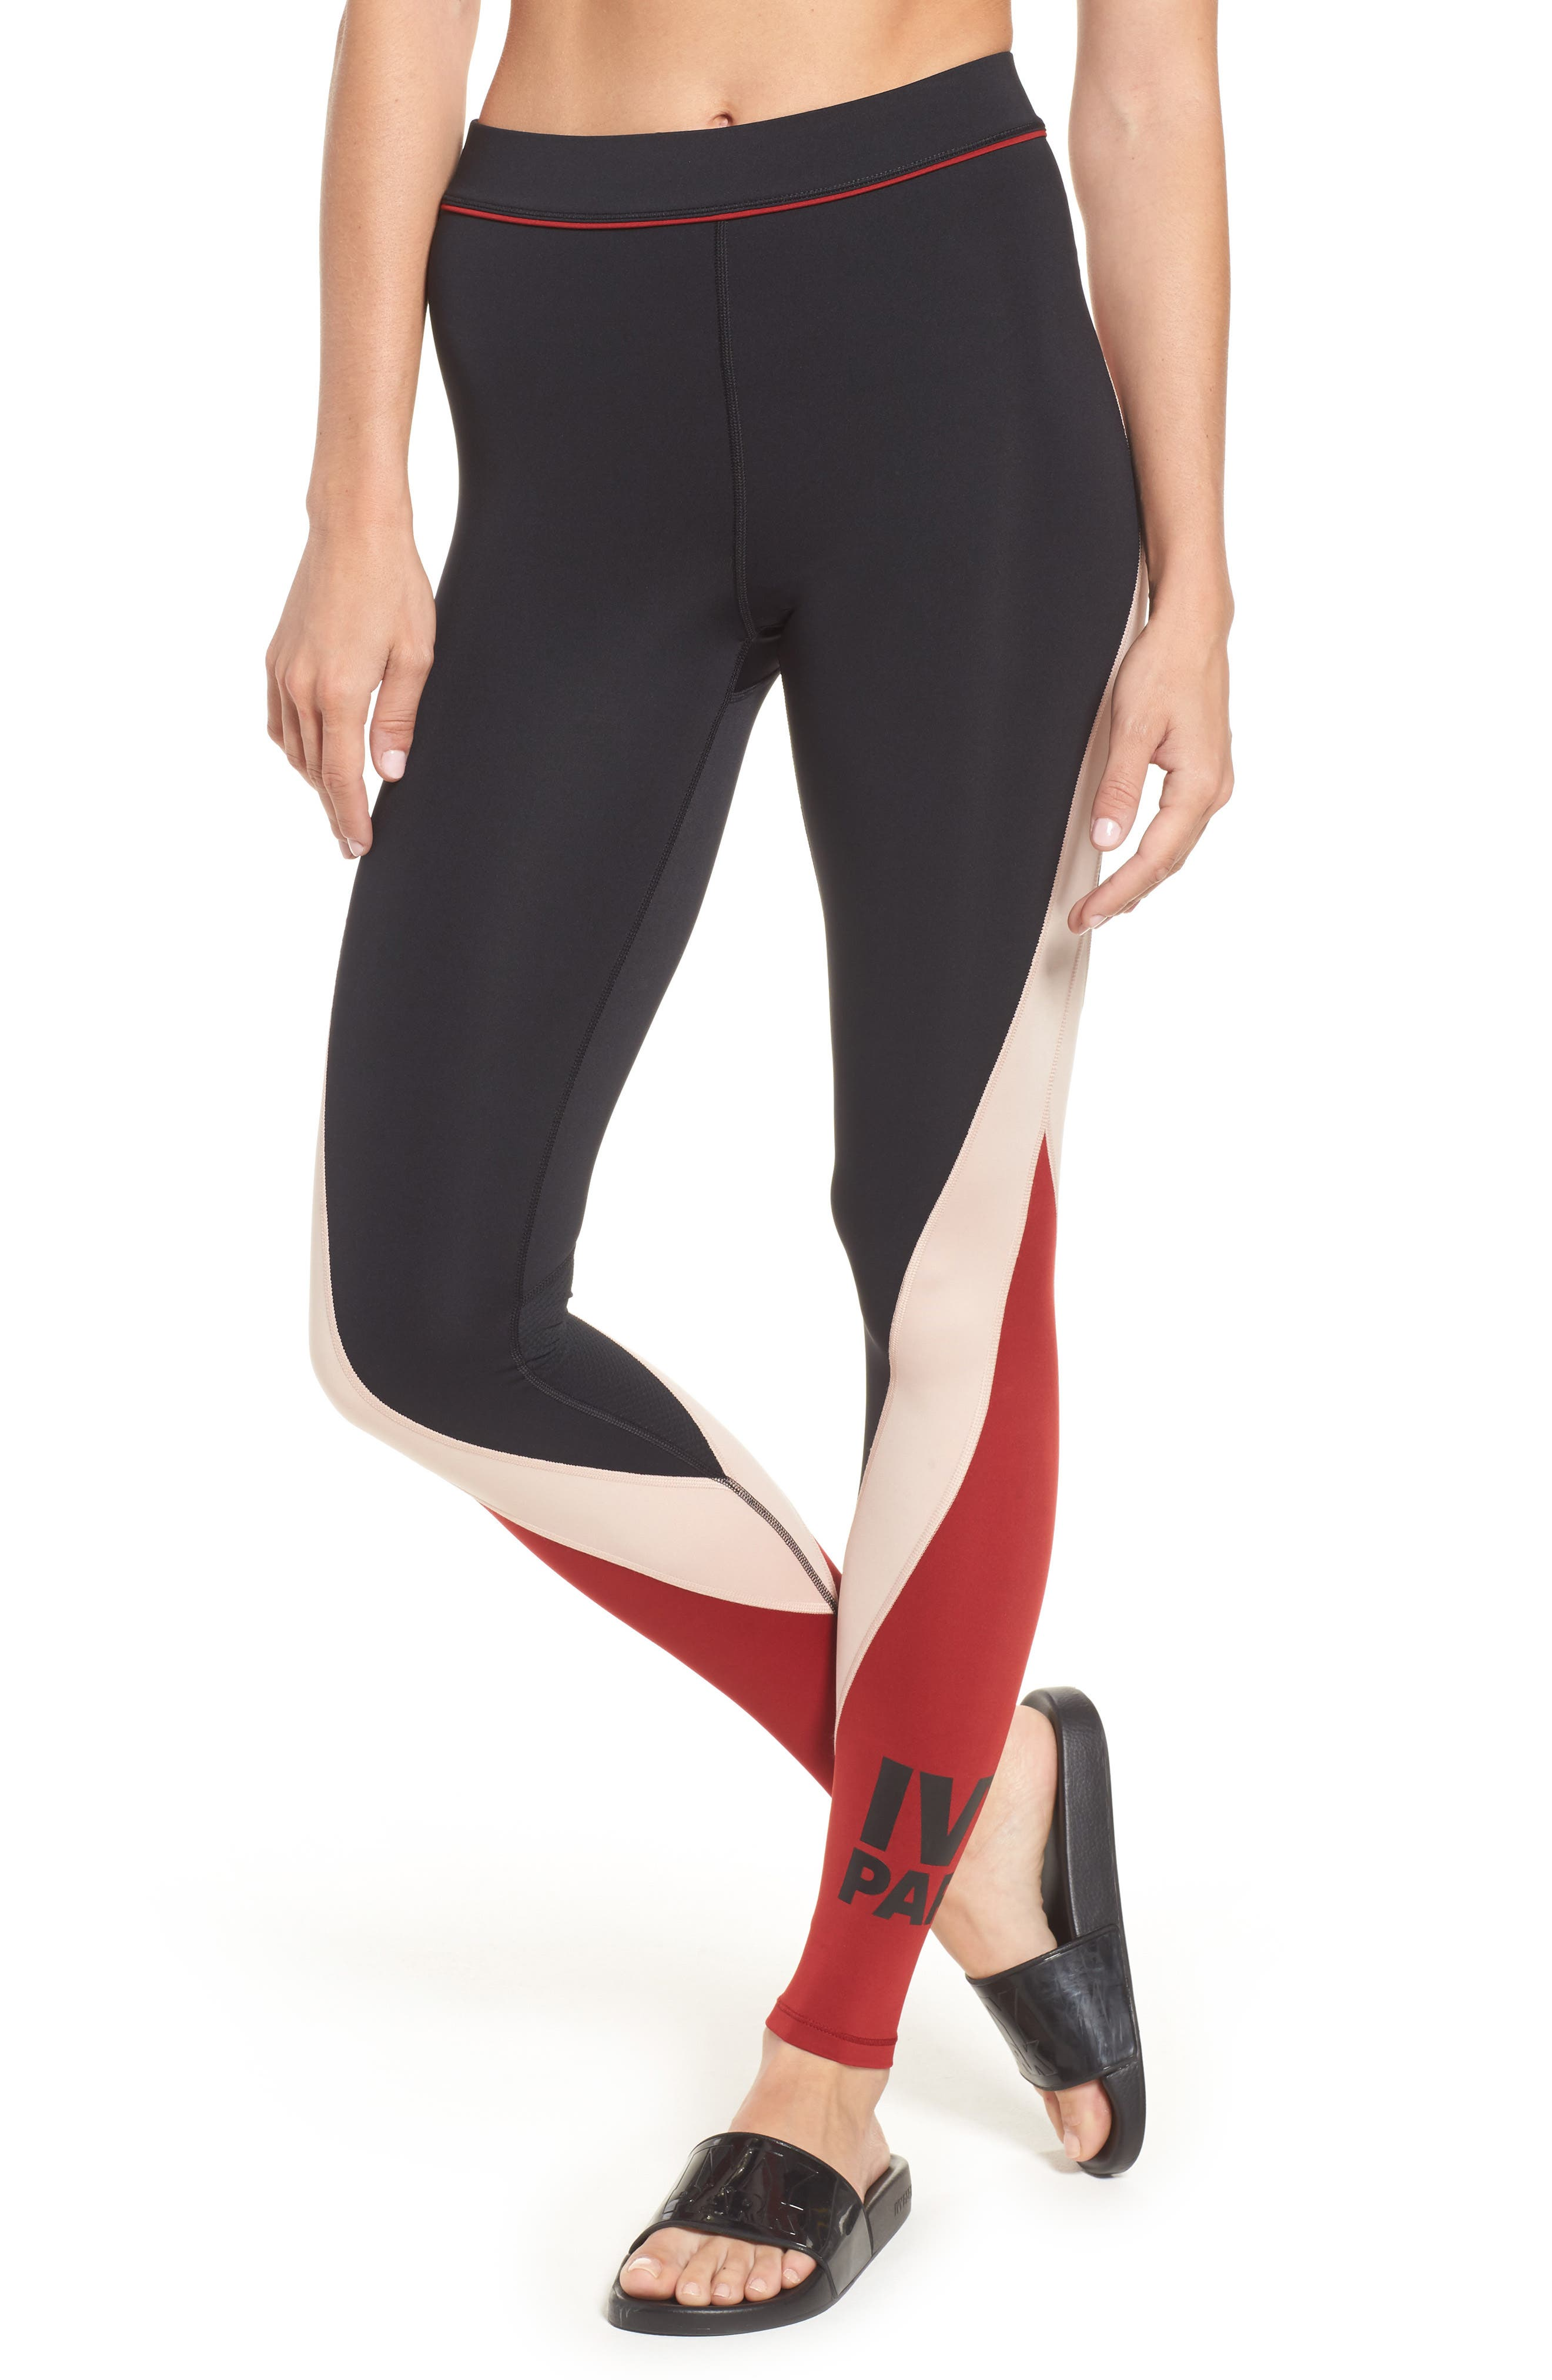 Main Image - IVY PARK® Colorblock Mid Rise Ankle Leggings